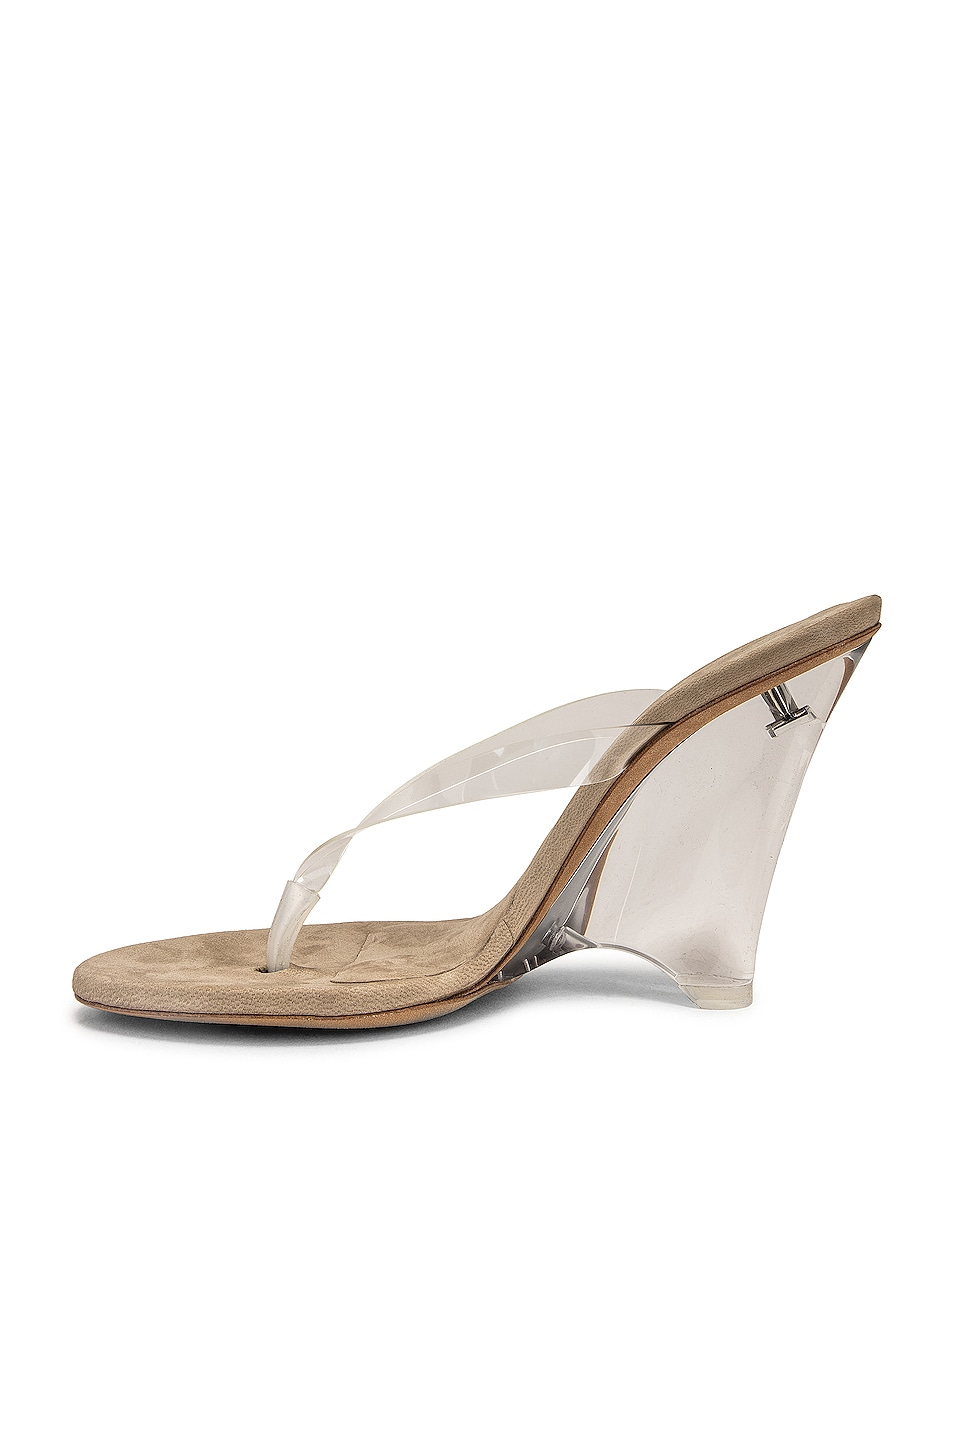 Image 5 of YEEZY Season 8 Wedge Thong Sandal in Clear